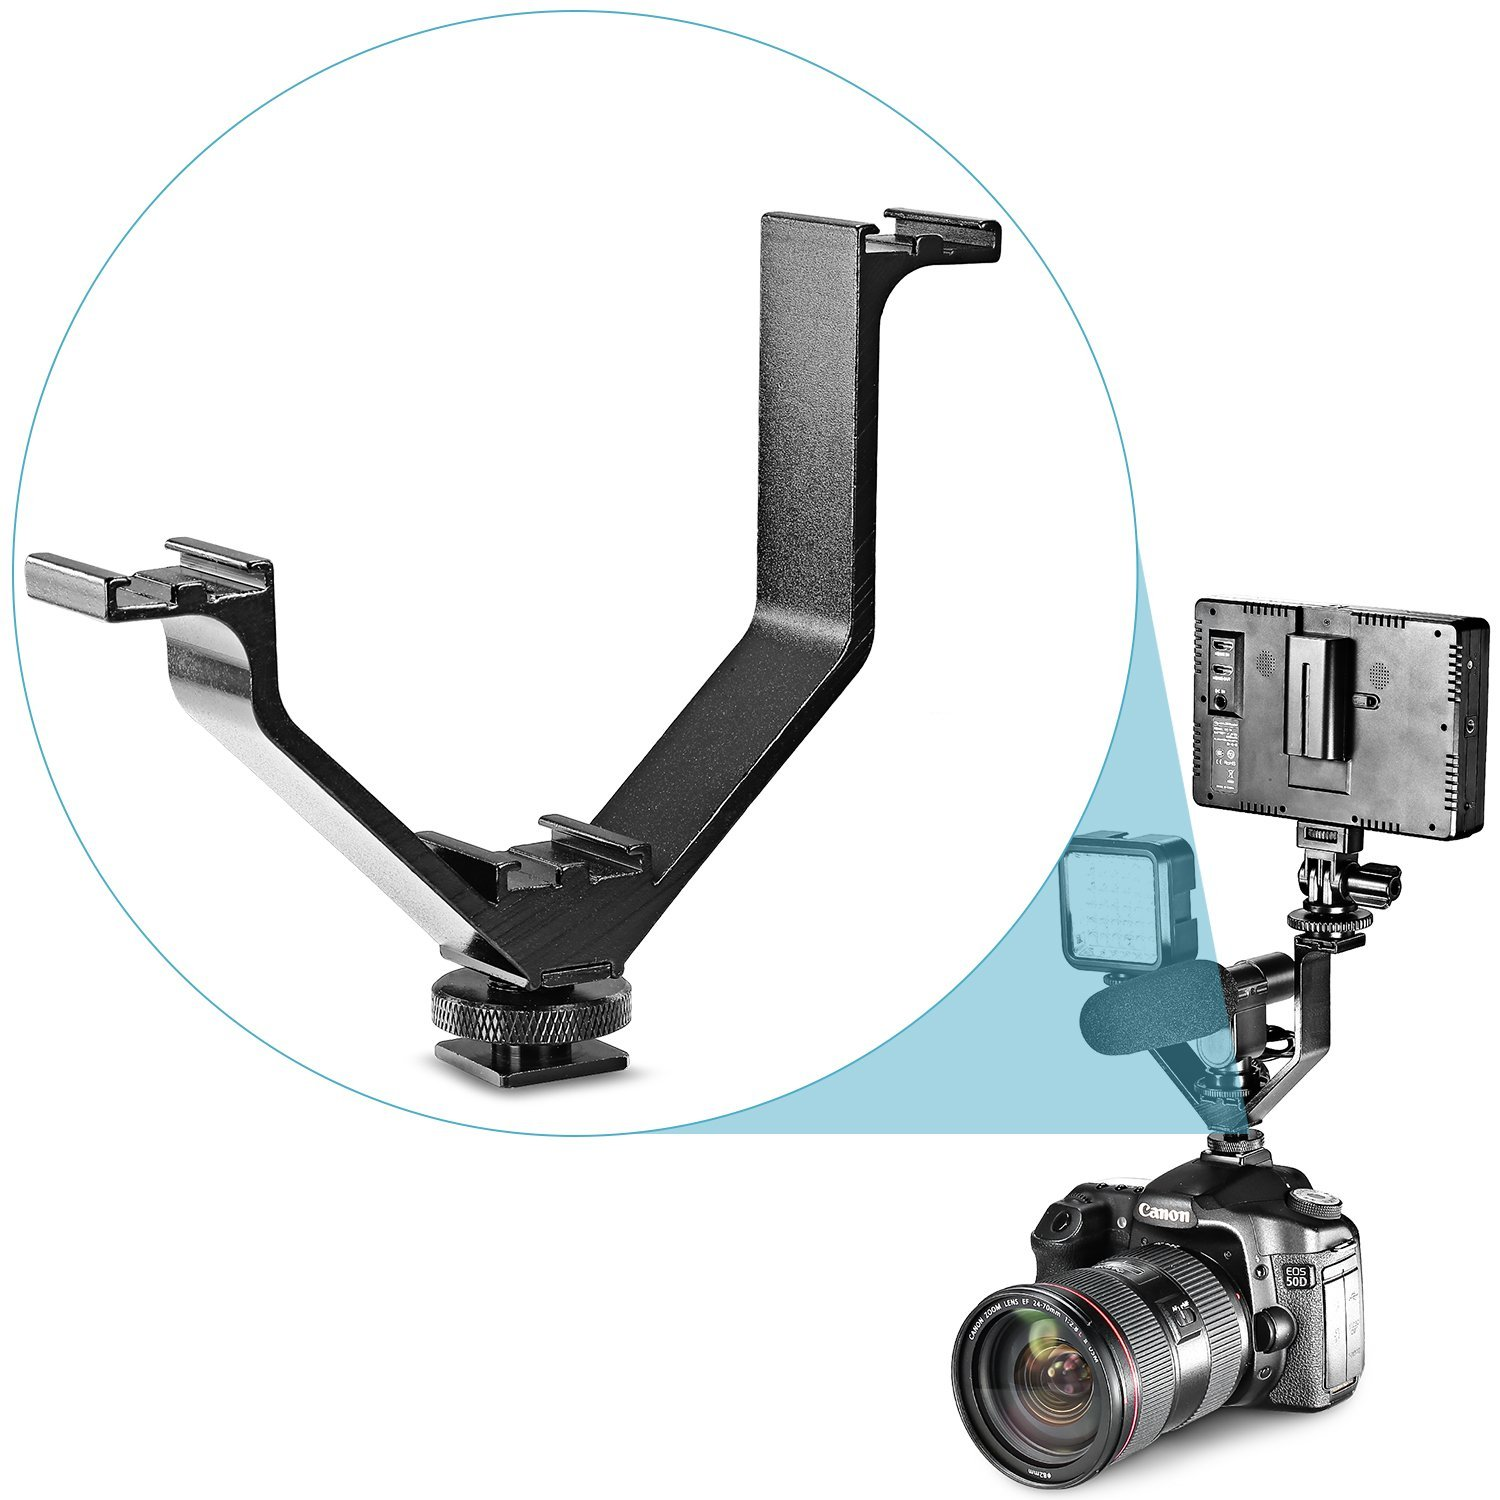 Neewer Aluminium Alloy 5''/12.5cm V-shape Triple 3 Universal Cold Shoe Mount Bracket for Nikon Canon Sony Pentax DSLR Camera or Camcorder Accessory Such as LED Video Light,Microphone,Monitor,Flash